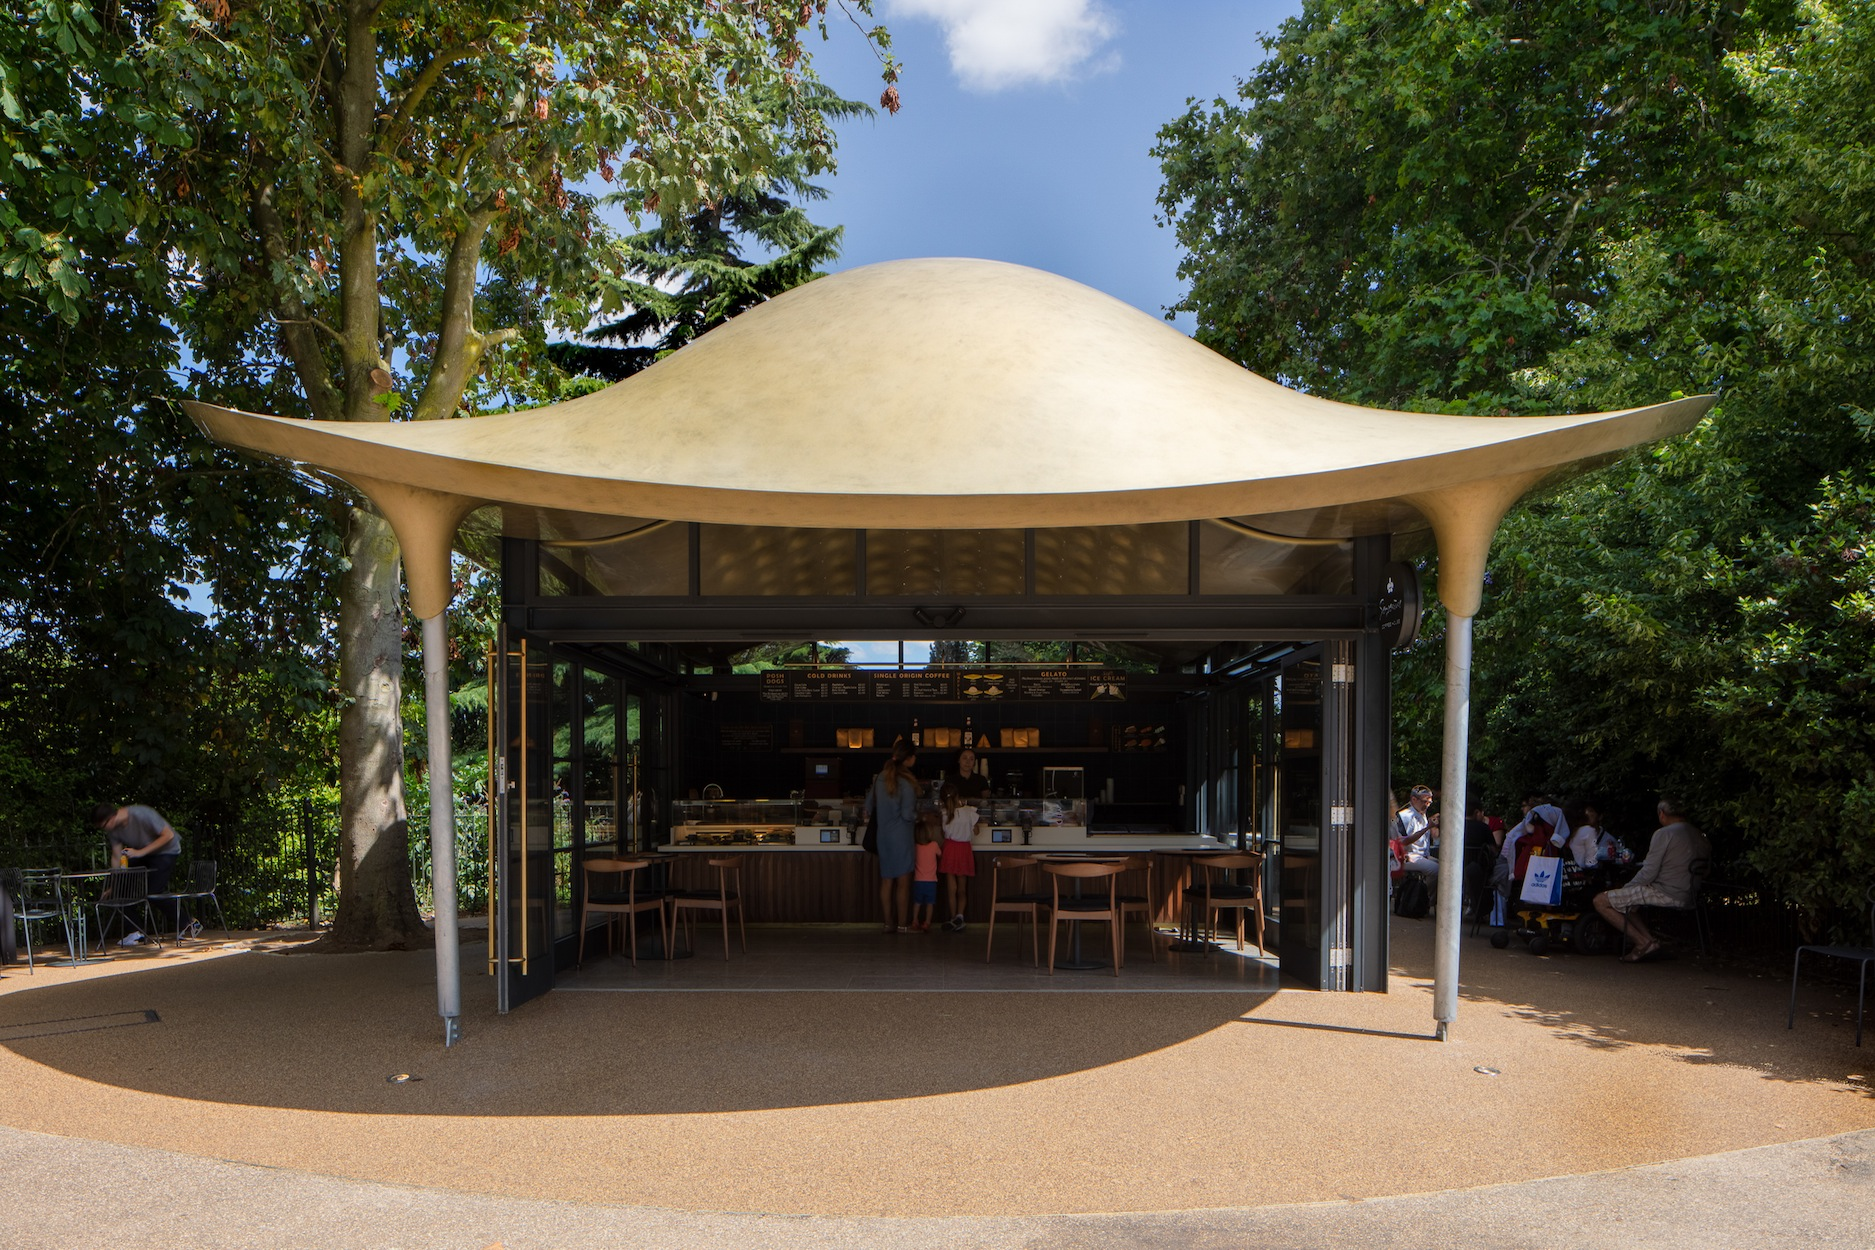 London's New Serpentine Coffee House Slithers Into Hyde Park